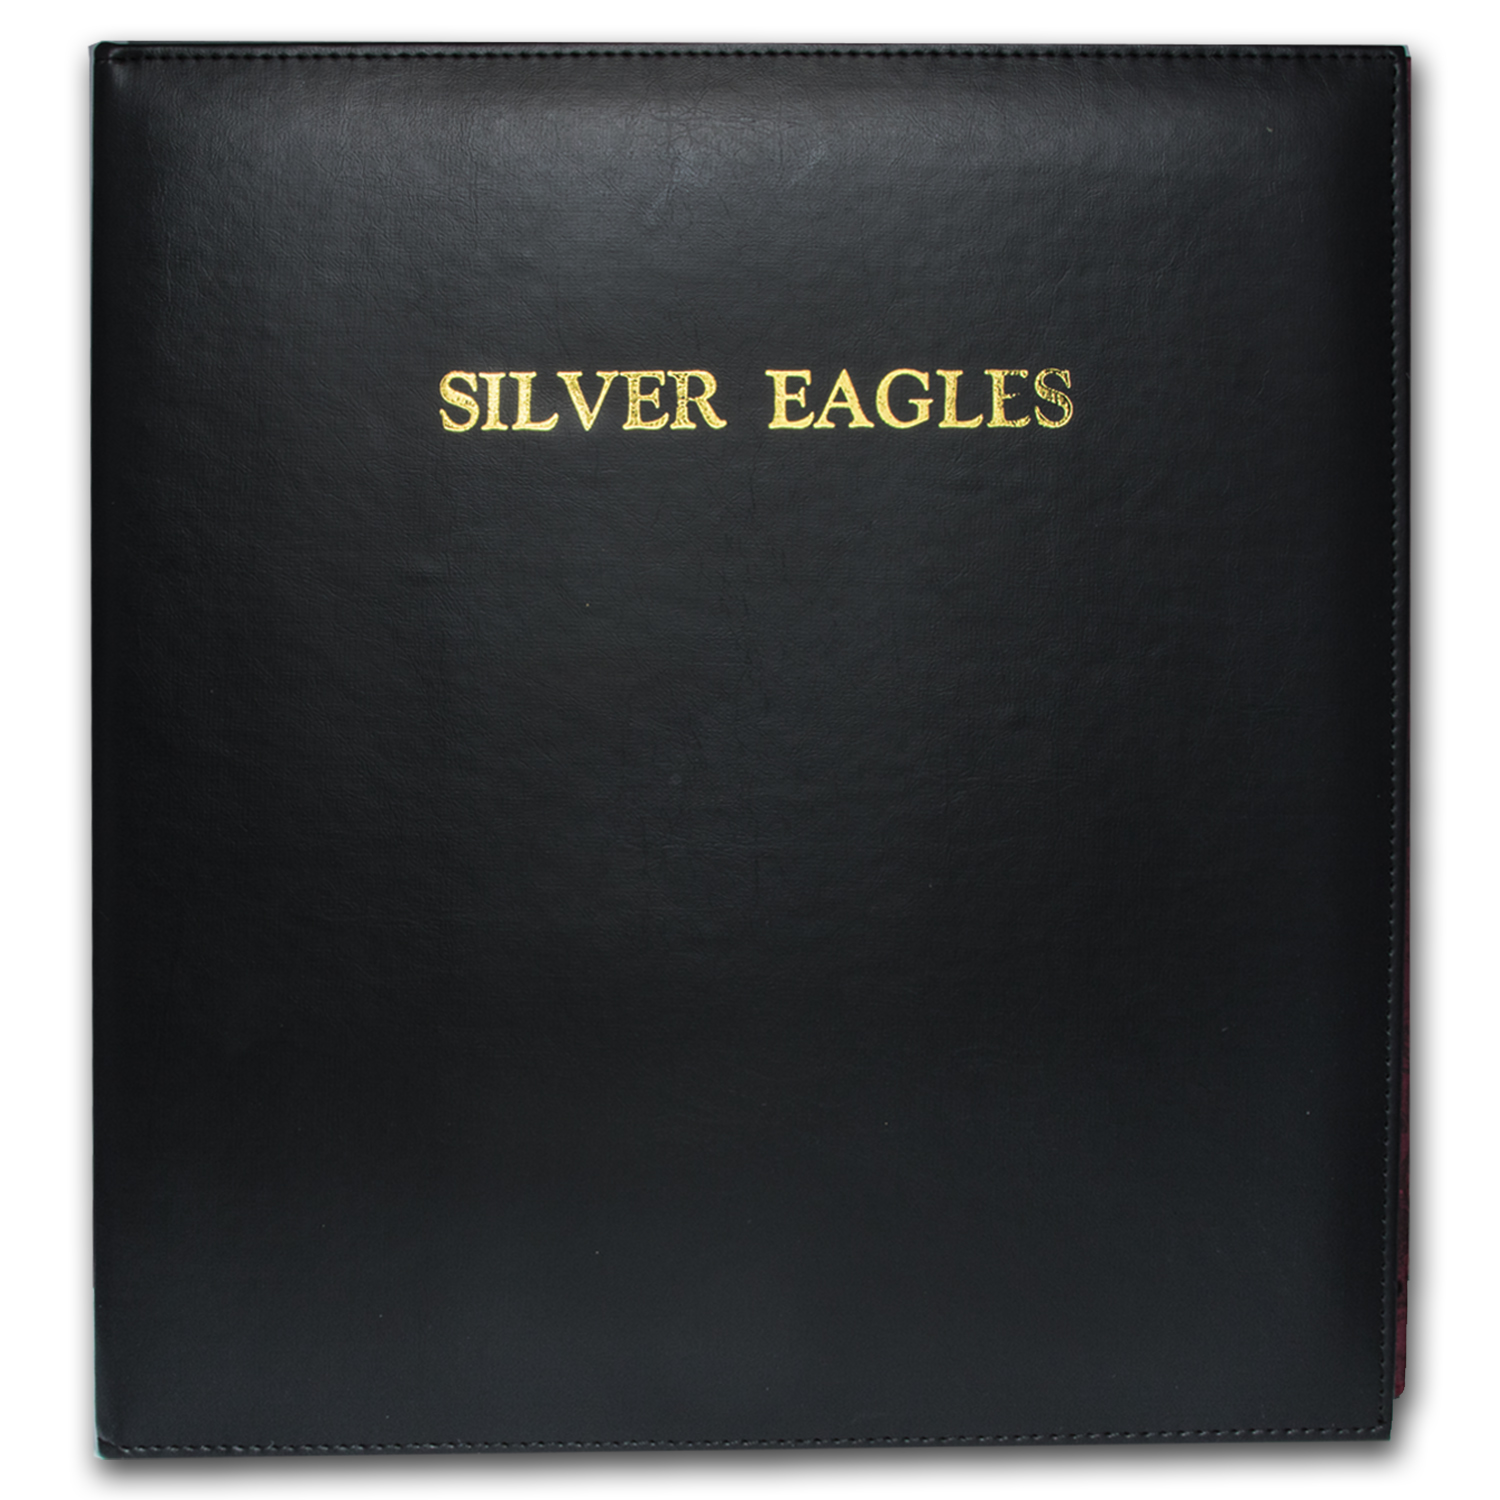 CAPS Album #2225 for Silver Eagle Date Set (1986-Date)